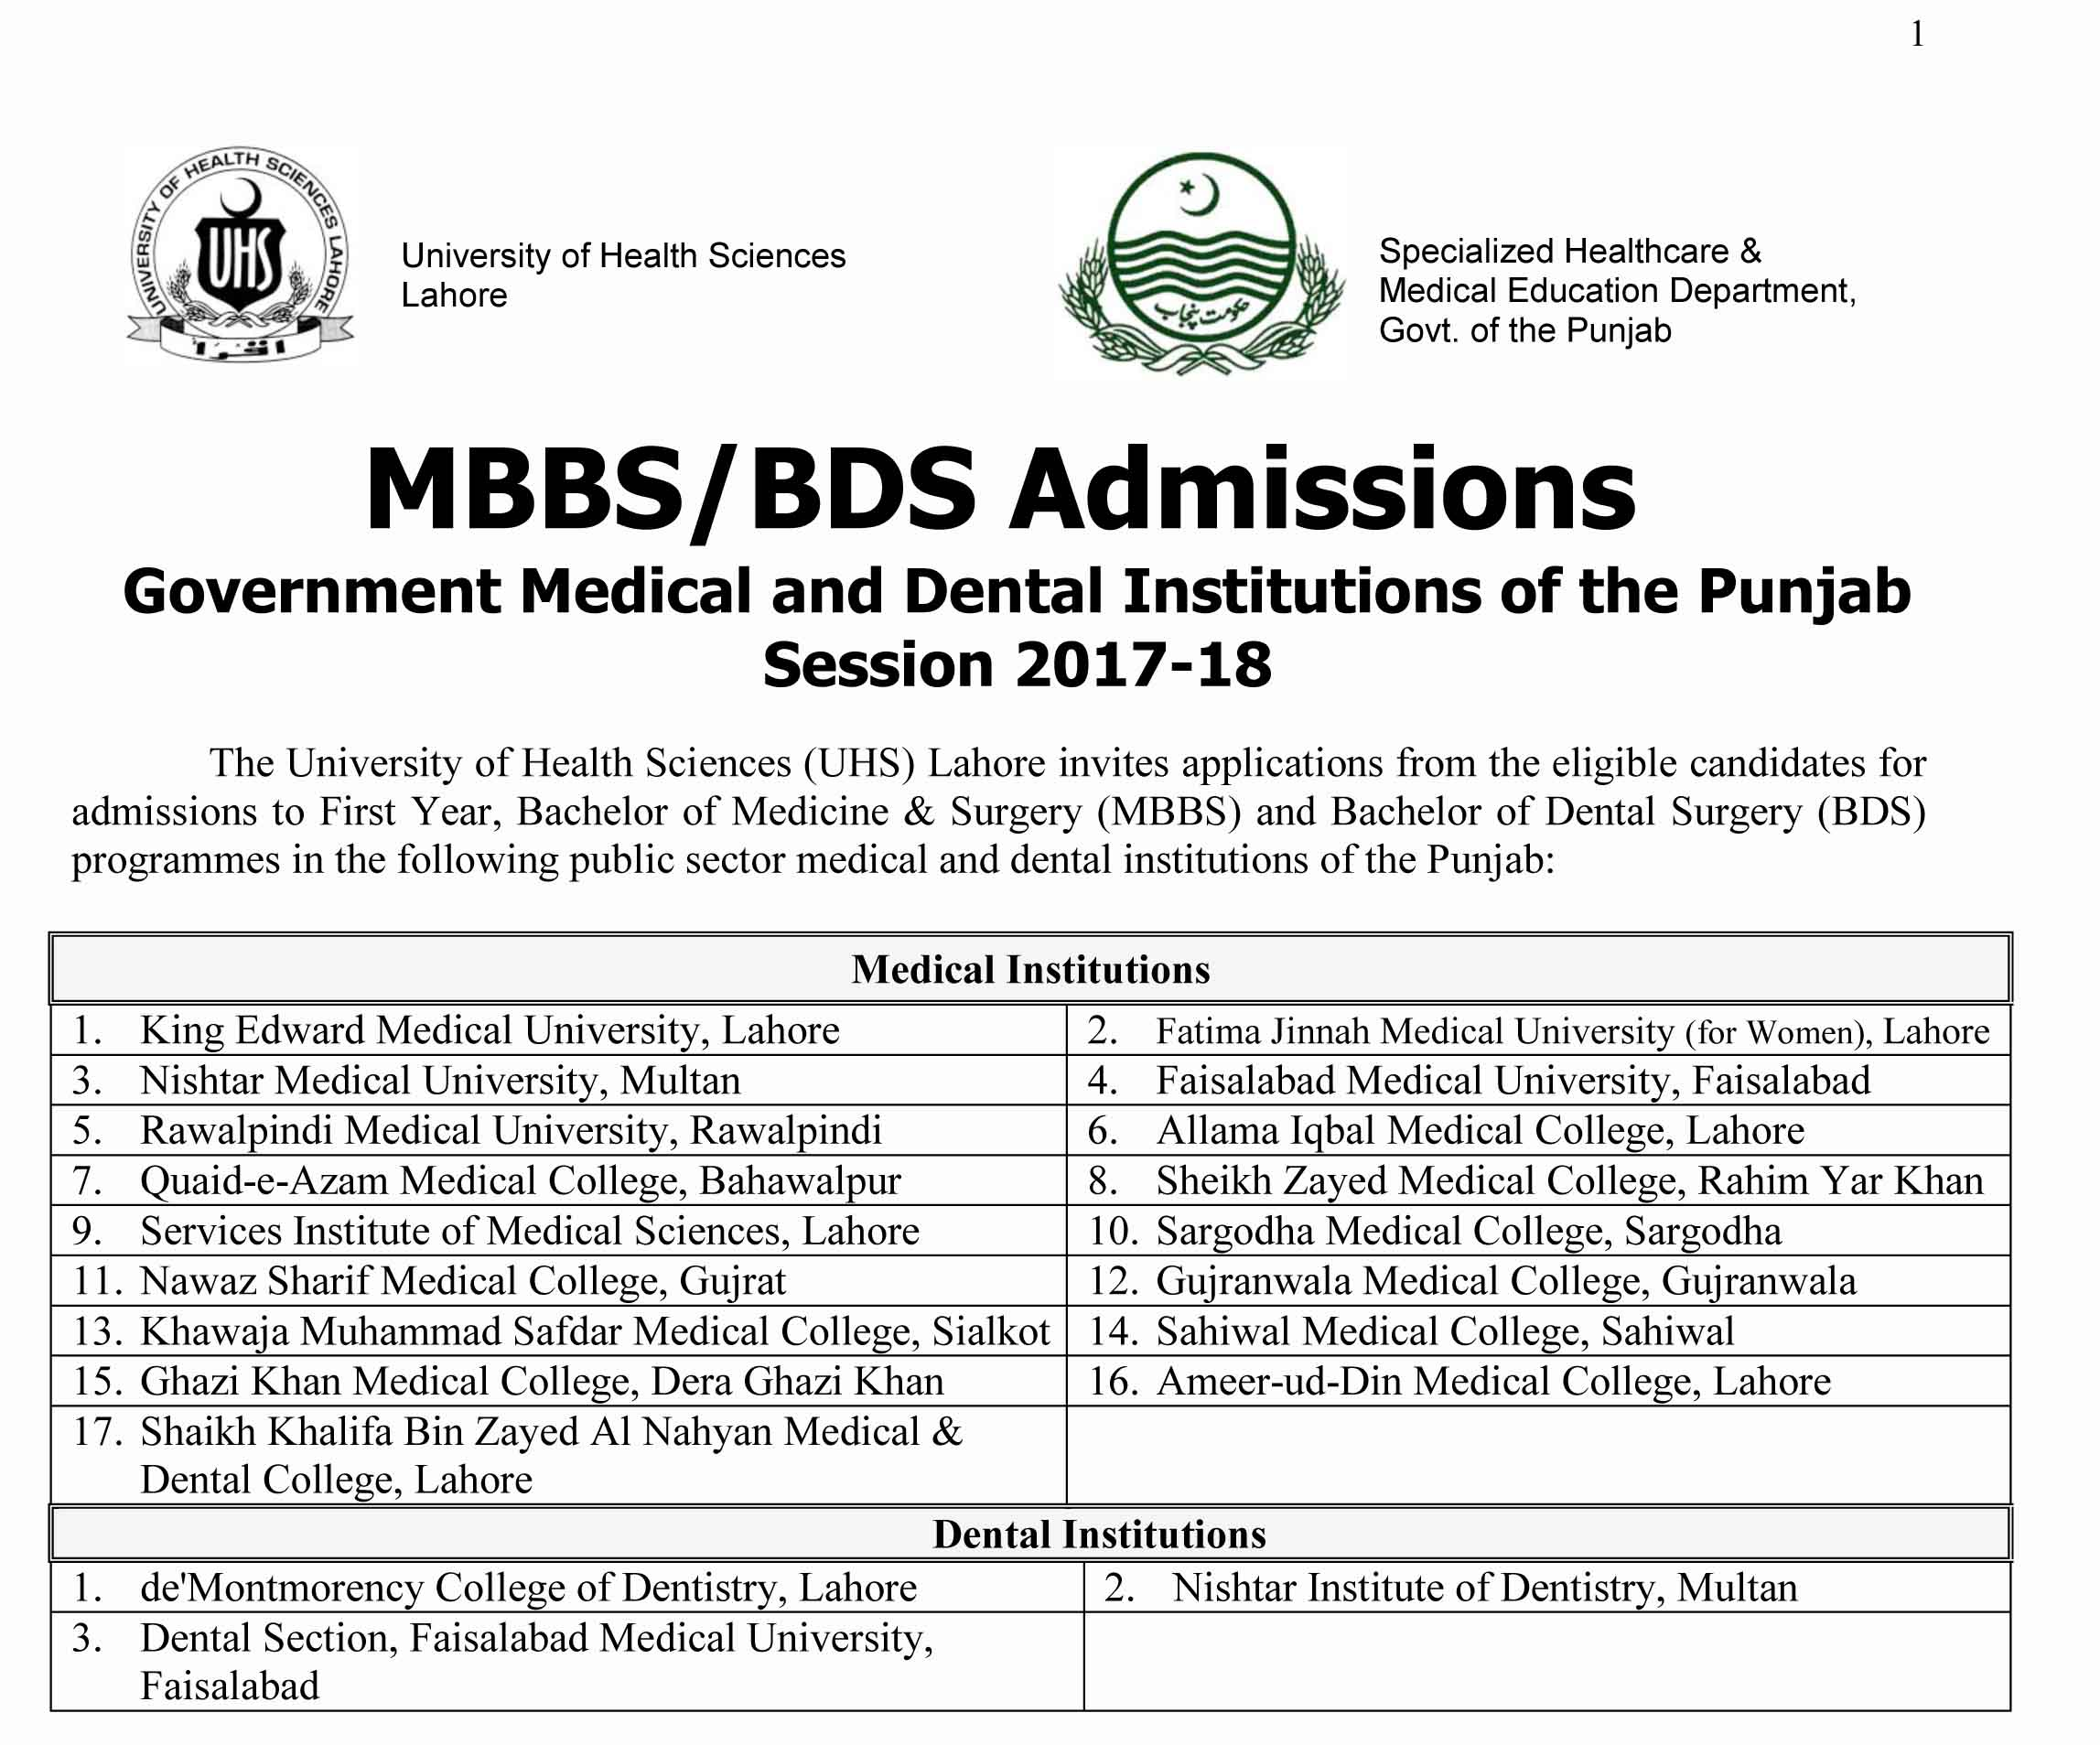 University of Health Sciences (UHS) Announcement – MBBS/BDS Admissions – (MDCAT TEST DATE – 2017)